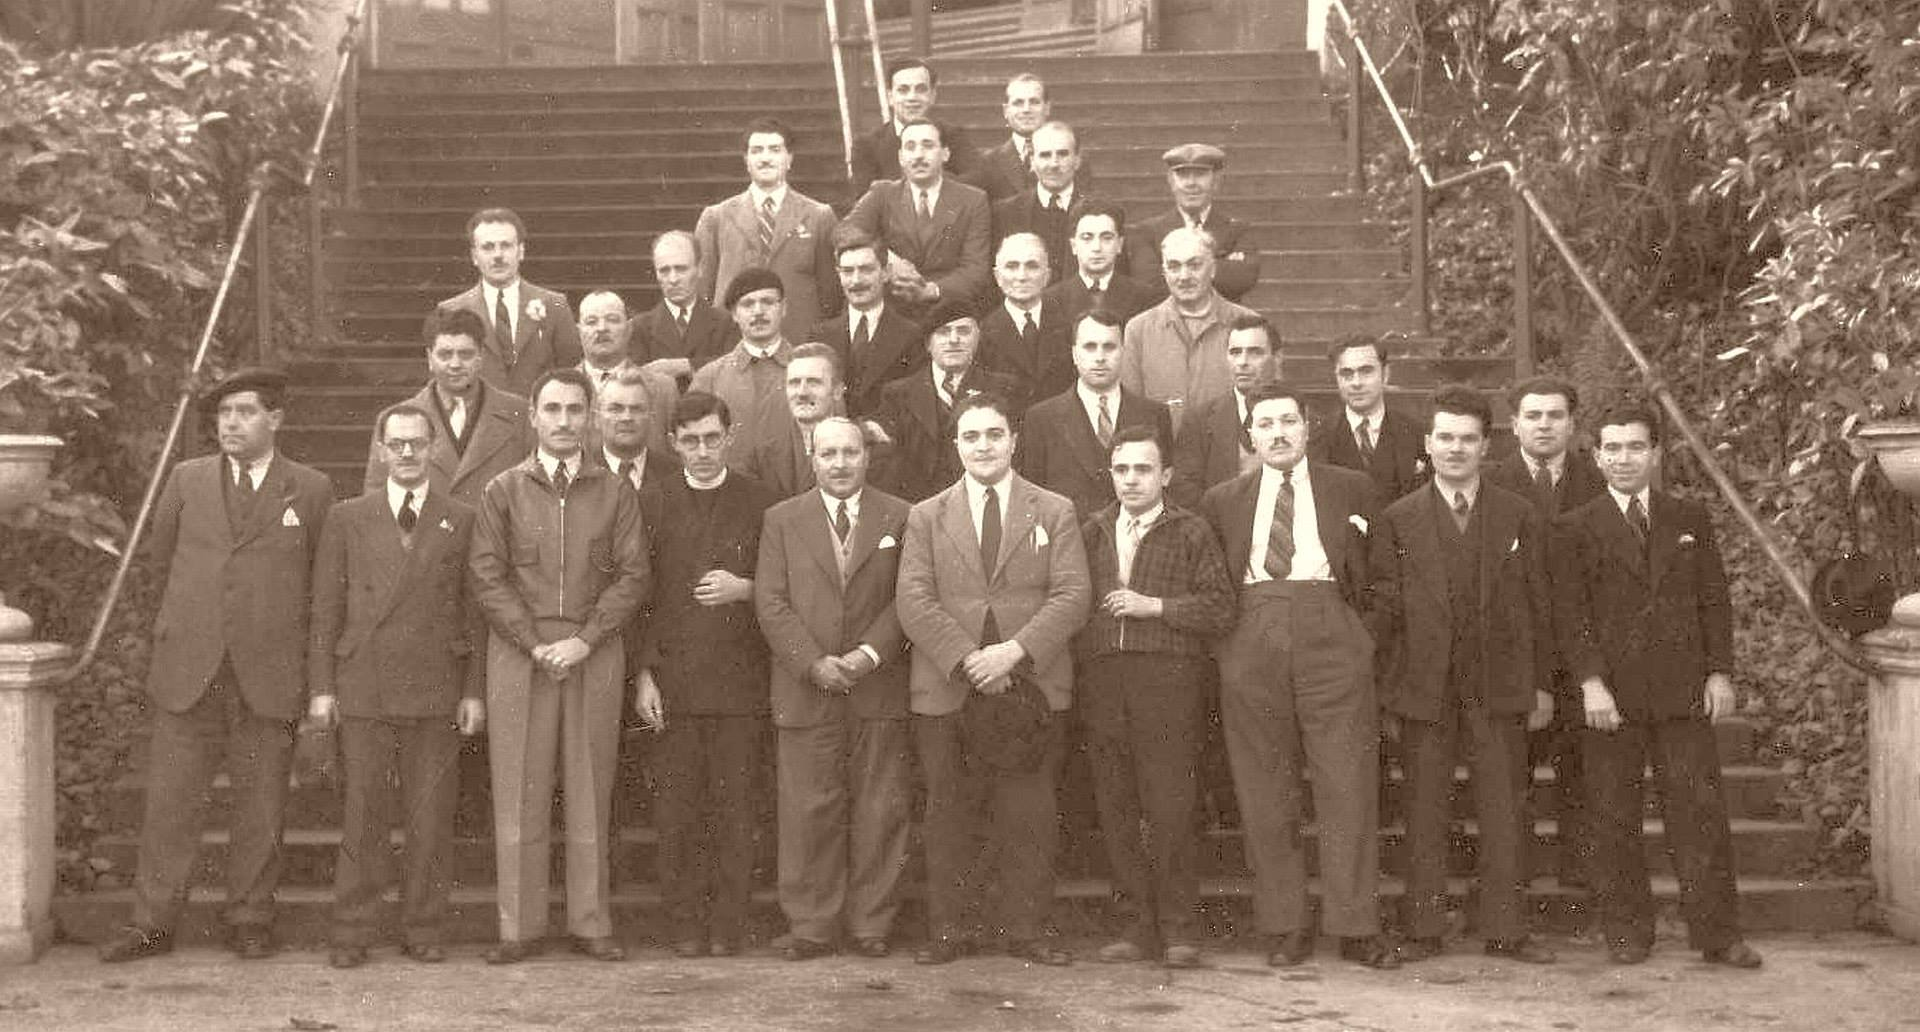 UK-aliens of Italian origin recently resident in the UK, in prisoner camps in the Isle of Mann 1940. From Filignano: Achille Coia, Alberto Coia, Alessandro Coia (Alec), Annibale Coia, Antonino Cocozza, Daniele Salvatore, Eugenio Cocozza, Eustachio Cocozza, Ferdinando Di Meo, Filippo Valente, Giovanni Pacitti (Ualëscionë) Raffaele Valente, Silvestro Coia and Vincenzo Coia. https://www.myheritage.com/site-family-tree-77908691/filignano-metropoli#!photo-77908691-0-1001314-1594607